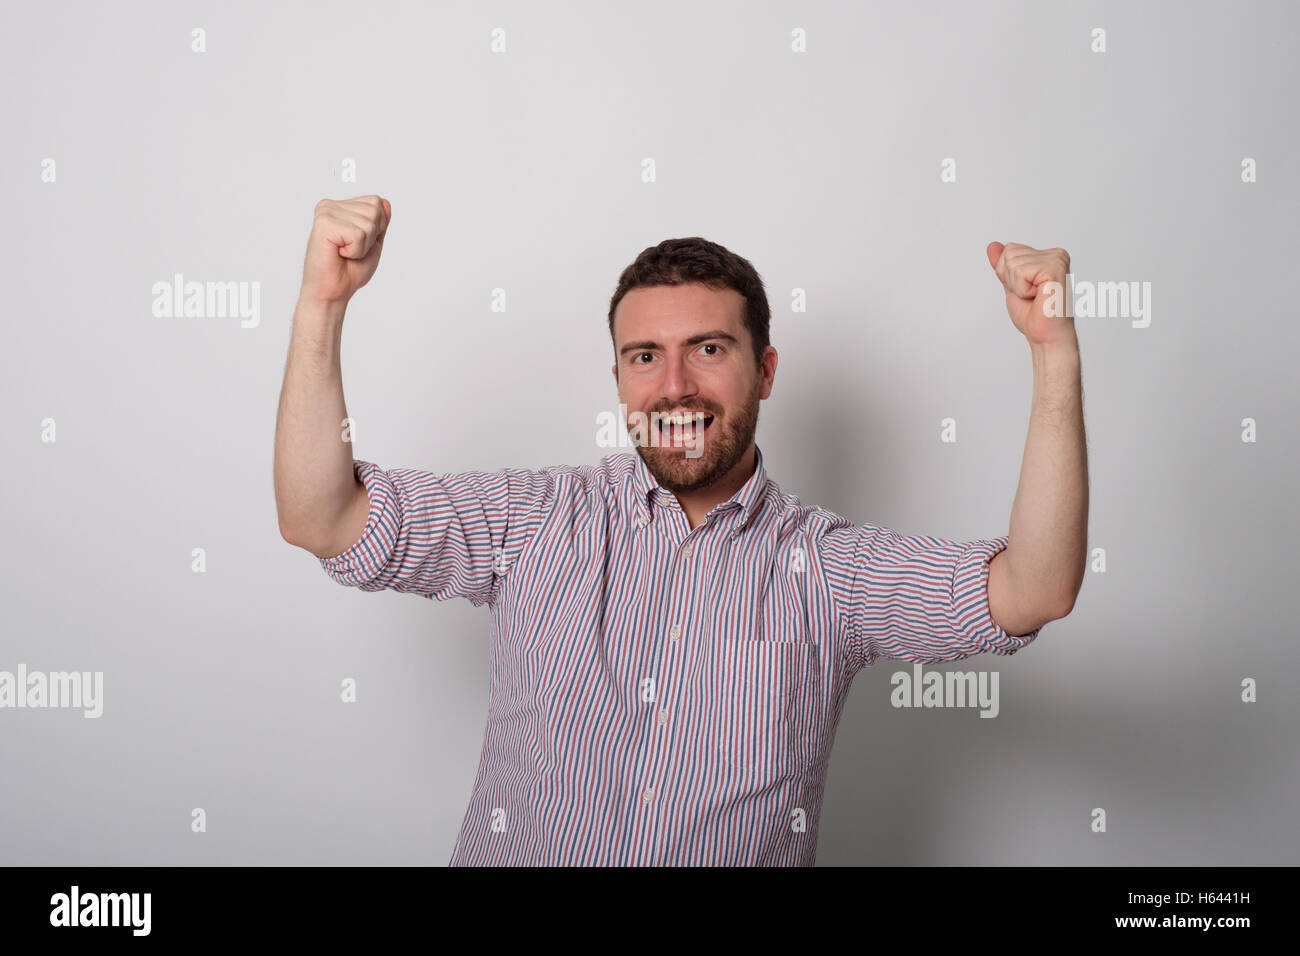 Man very happy for a victory - Stock Image